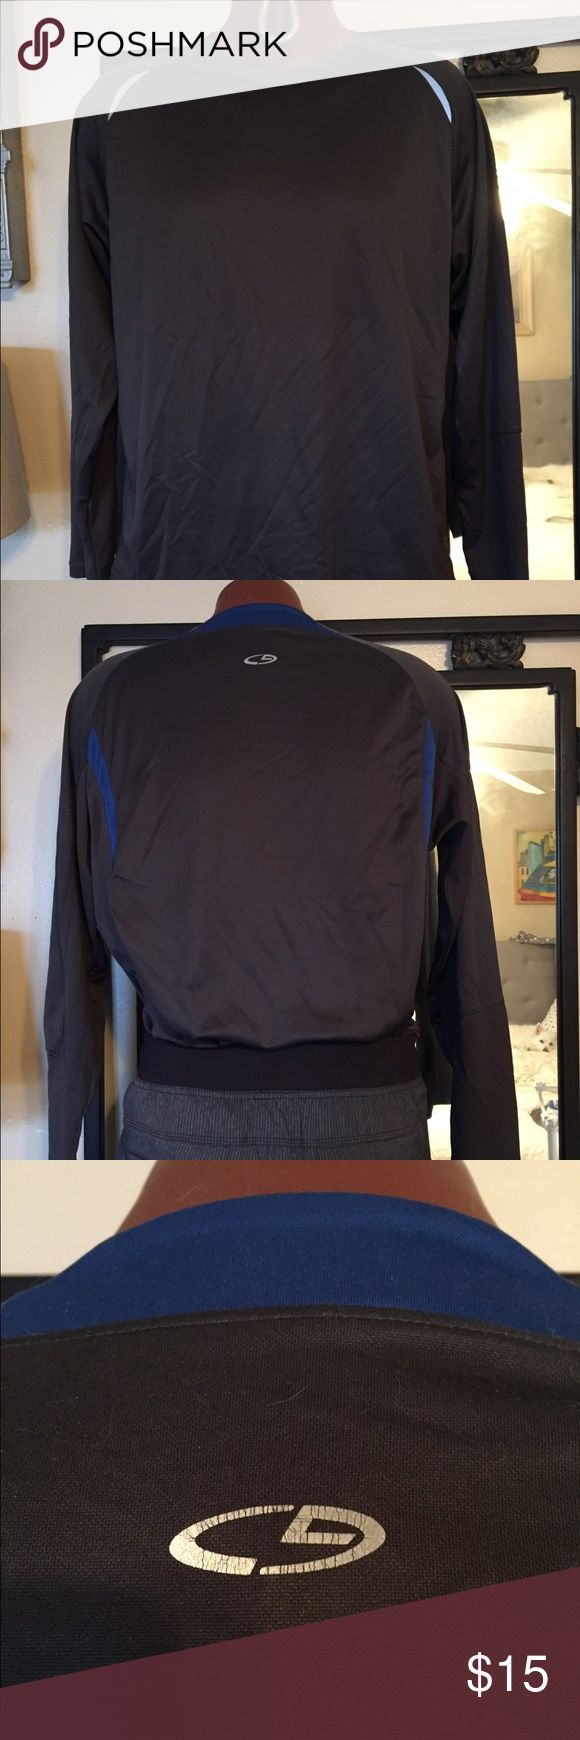 Champion duo dry long sleeve men's athletic shirt Good used condition size large dark gray with marine blue accent. Good quality soft stretch fabric. A bit of wear on duo fit mark at lower corner see pic. Champion Shirts